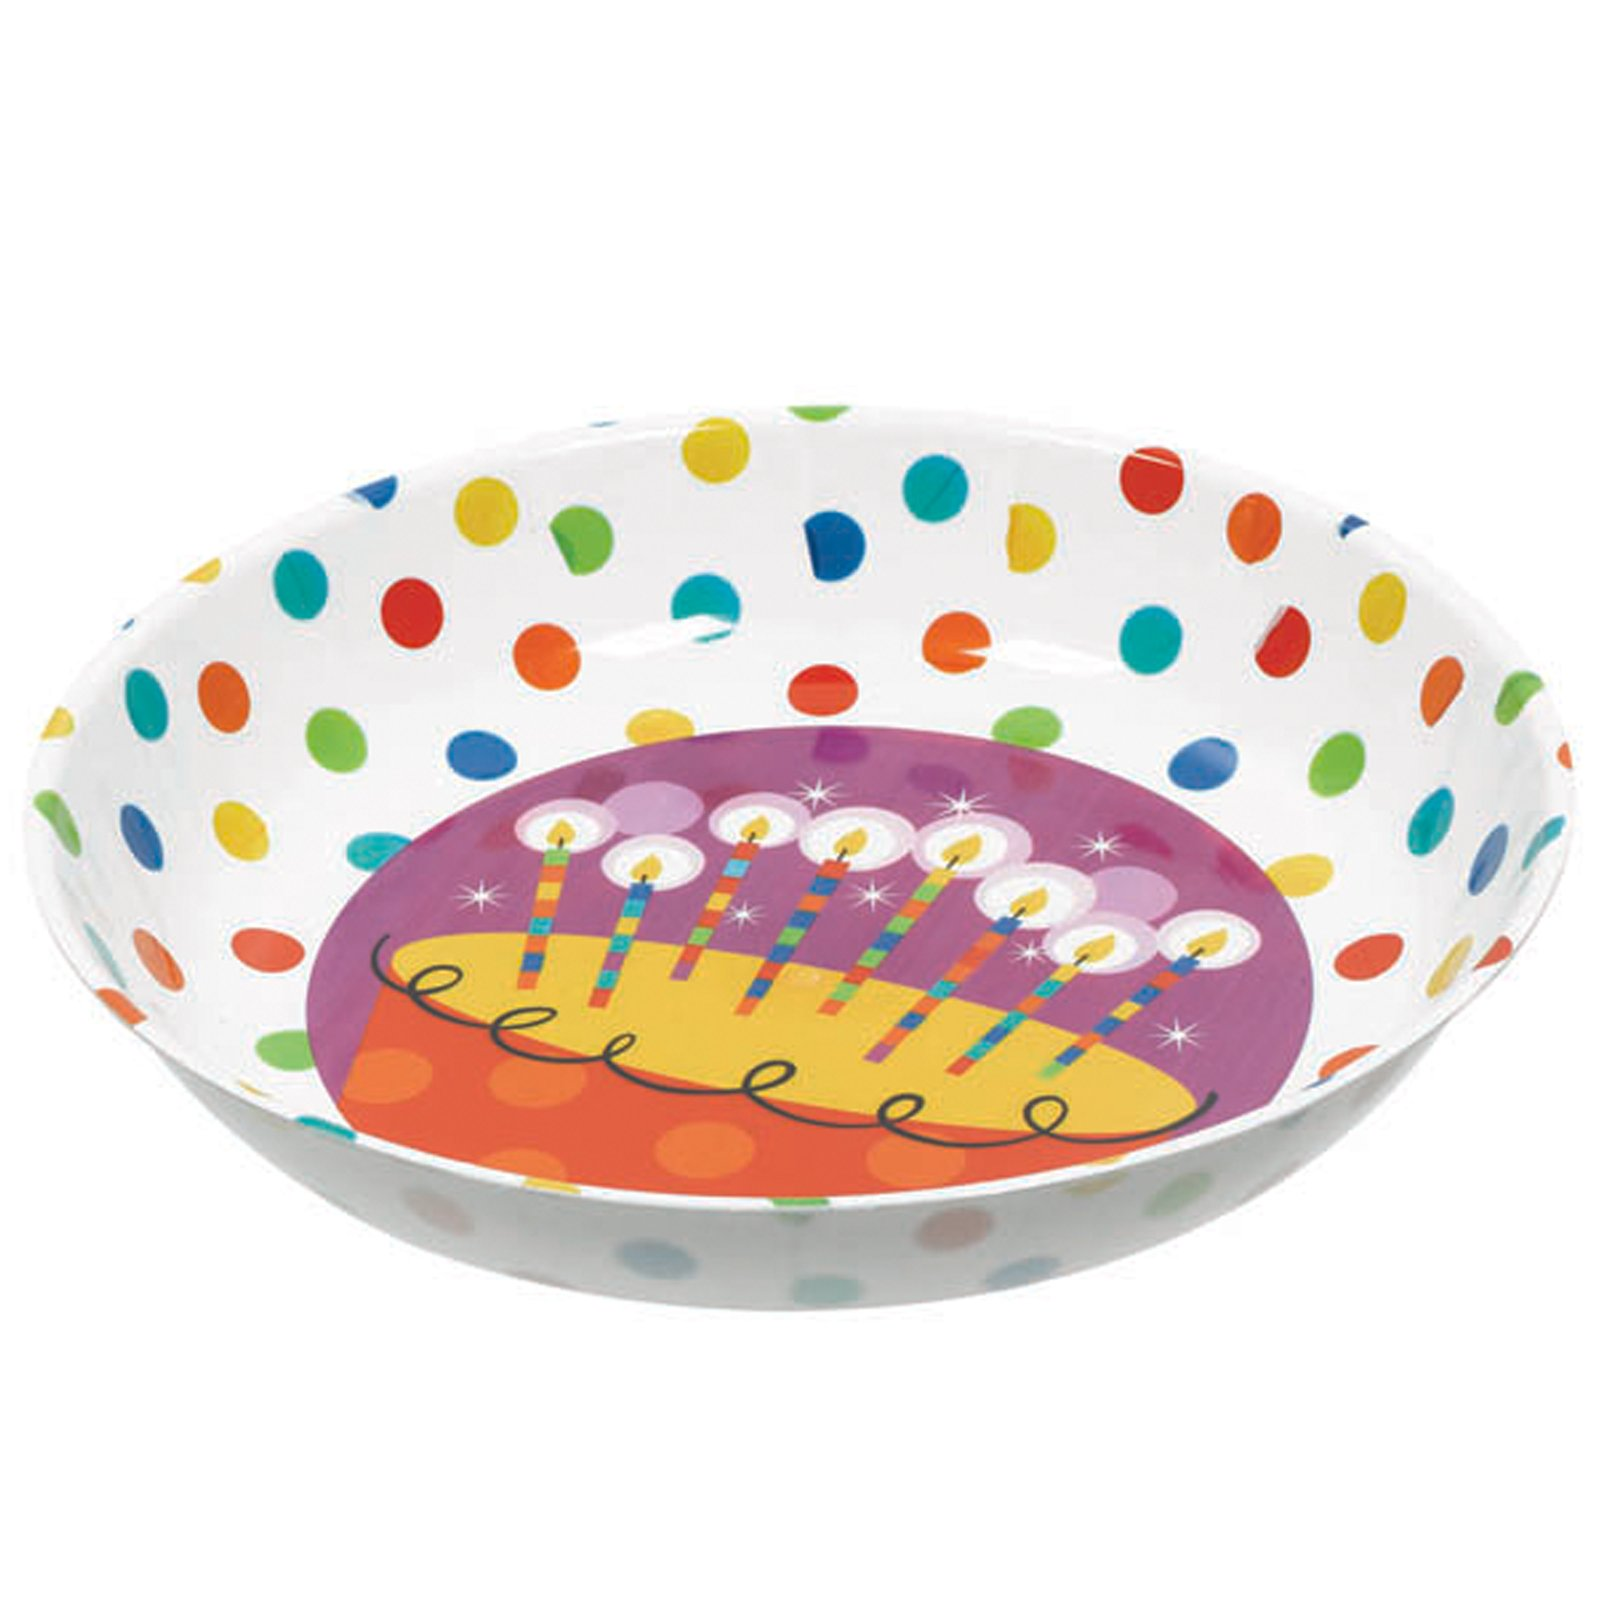 "14"" Large Plastic Birthday Cake Bowl"